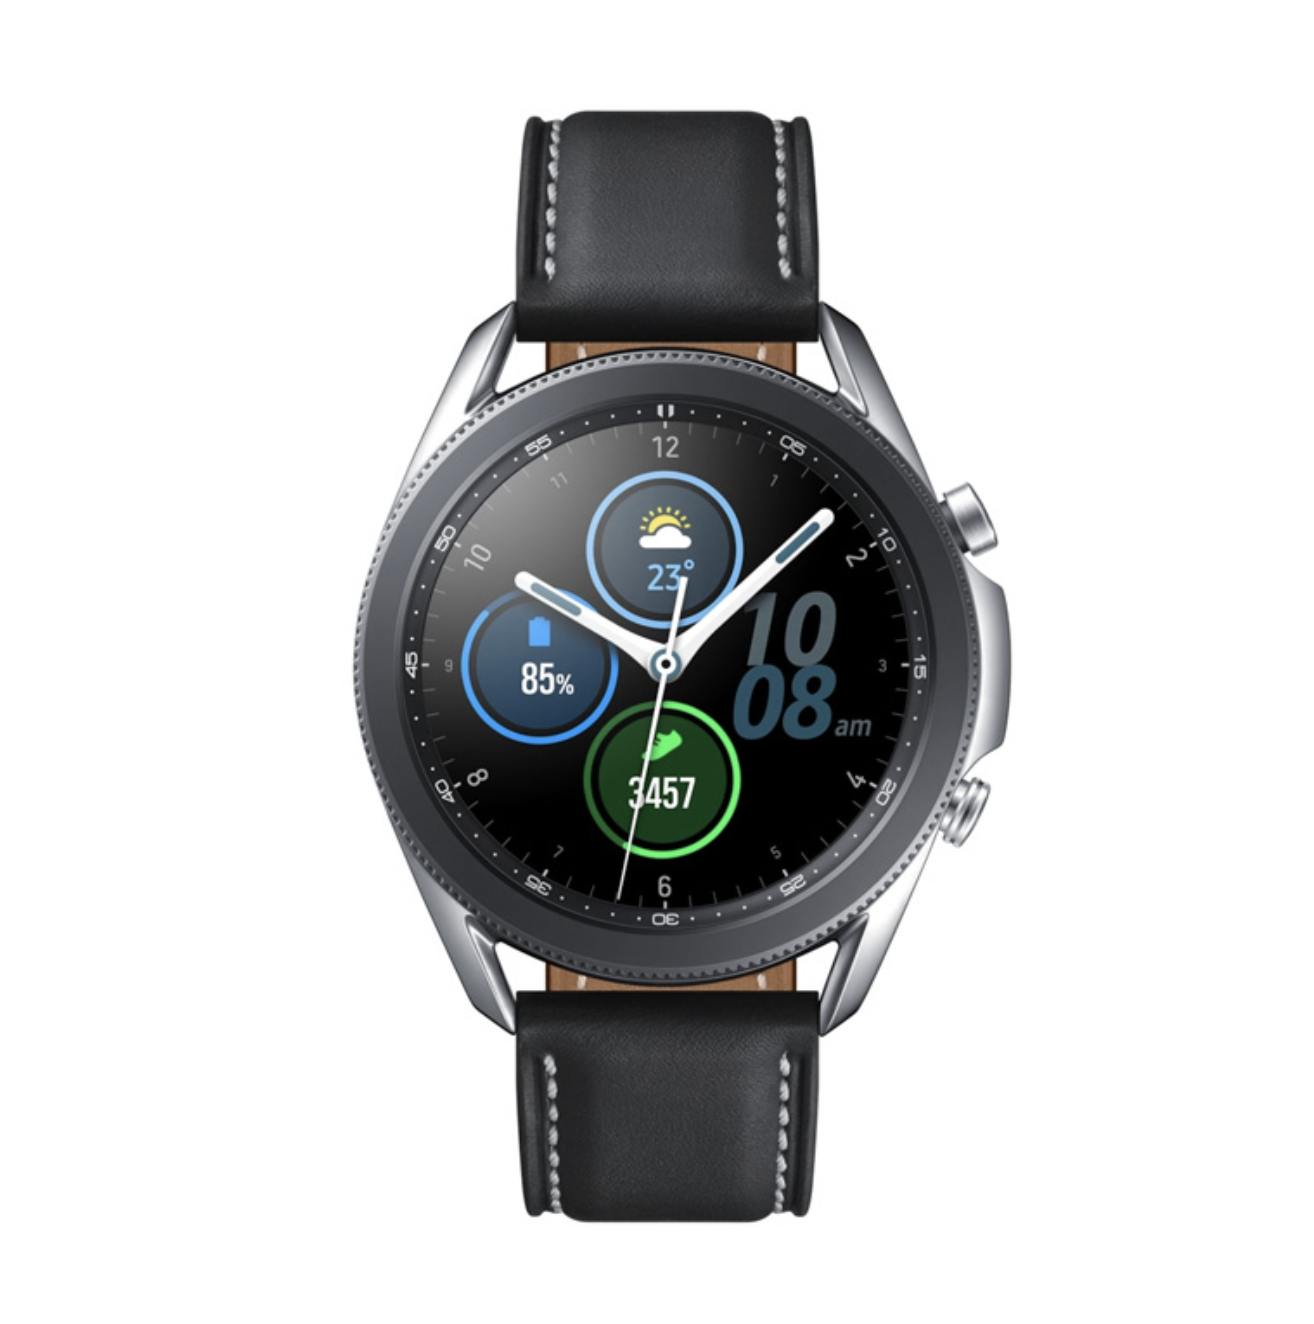 SAMSUNG 三星 Galaxy Watch3 智能手表